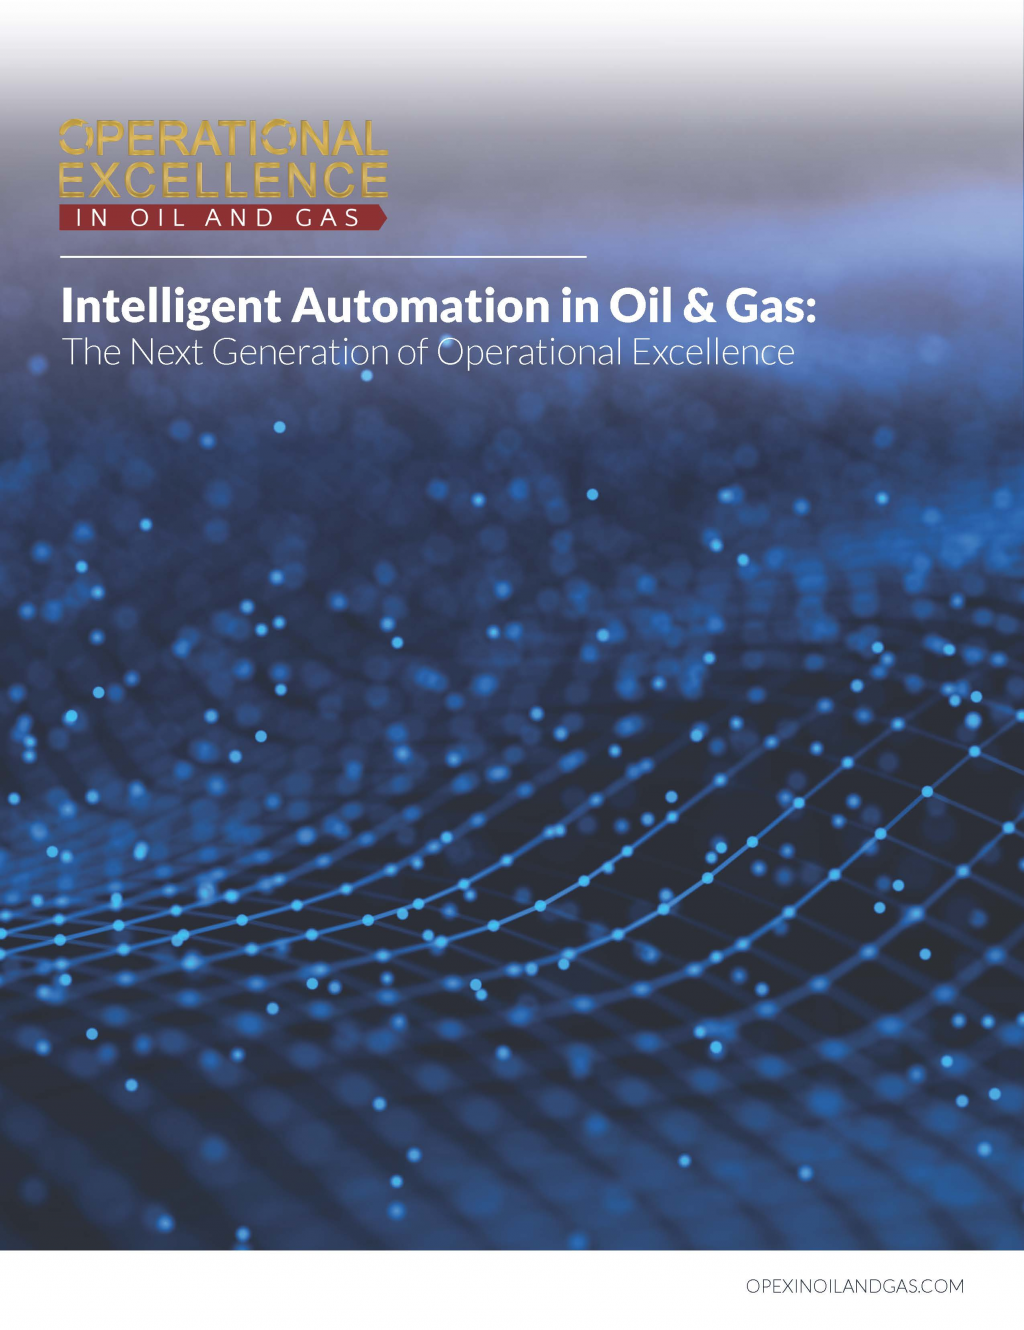 Intelligent Automation in Oil & Gas Report - Sponsorship Opportunities